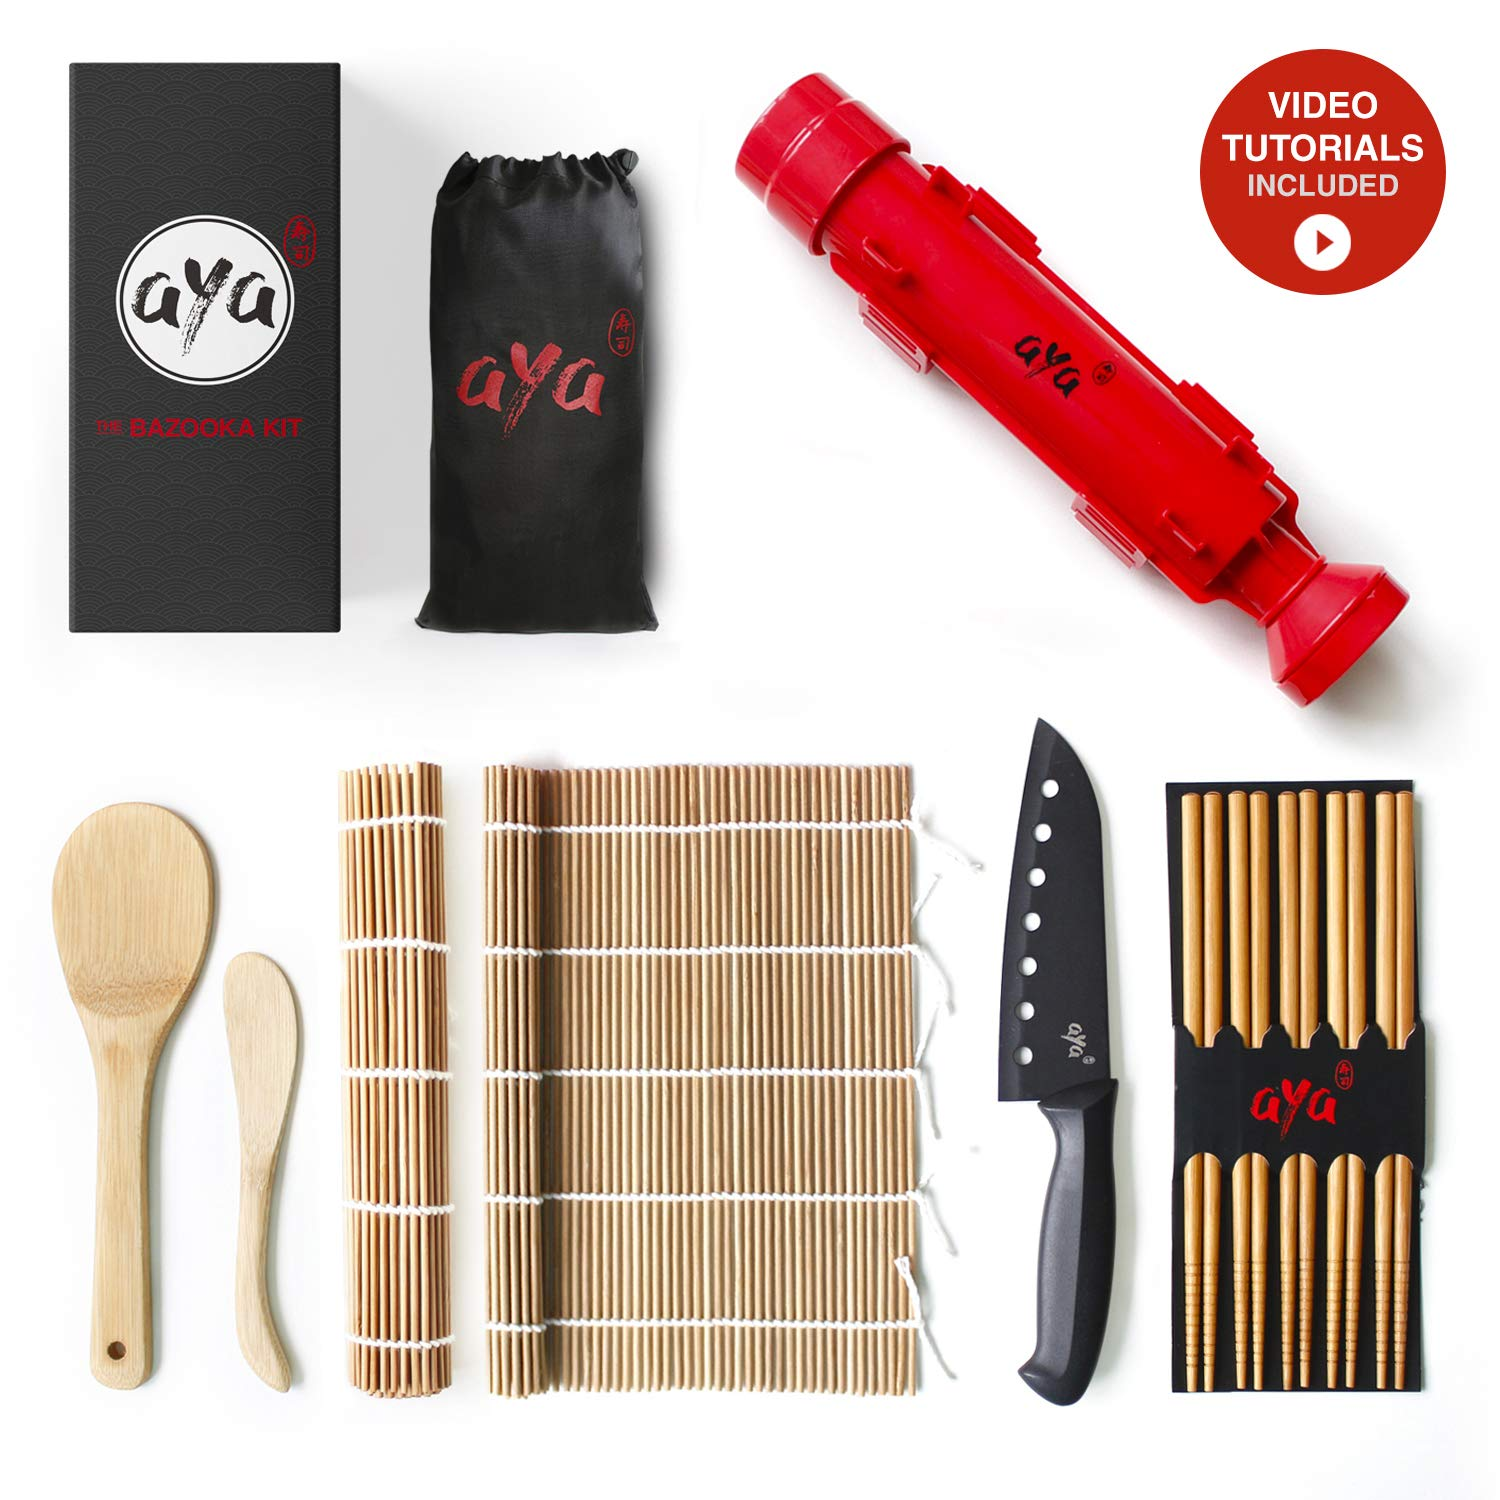 Sushi Making Kit - Original AYA Bazooka Kit with Sushi Chef Knife - Online Video Tutorials - All-In-One Bazooka Sushi Maker - 2 Natural Premium Bamboo Mats - Paddle & Spreader - 5 x Chopsticks by Aya